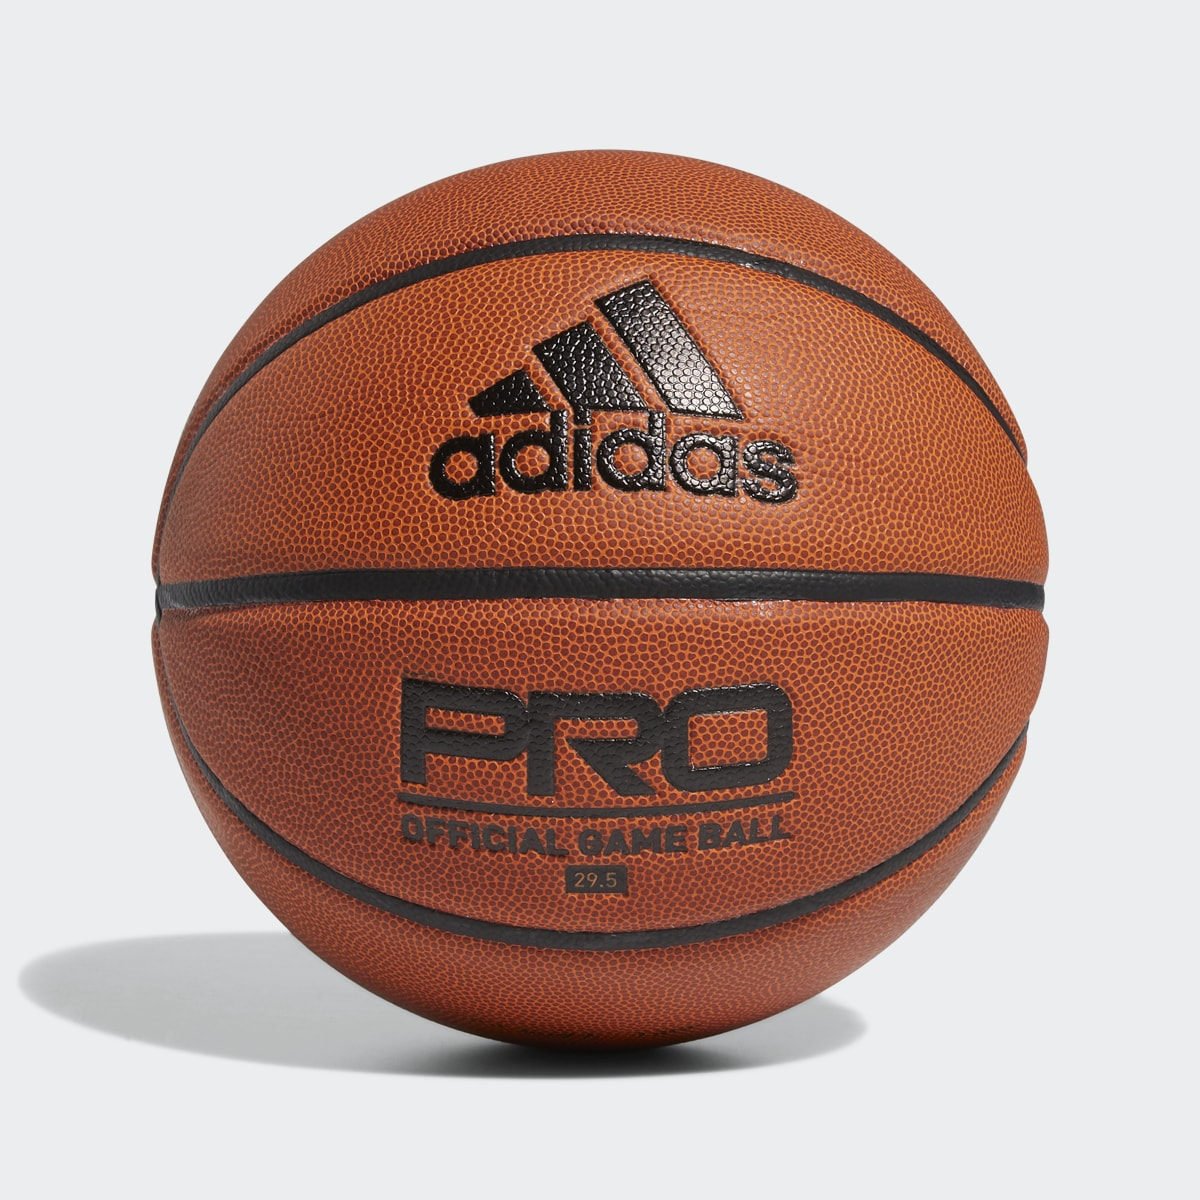 Pro 2.0 Official Game Ball